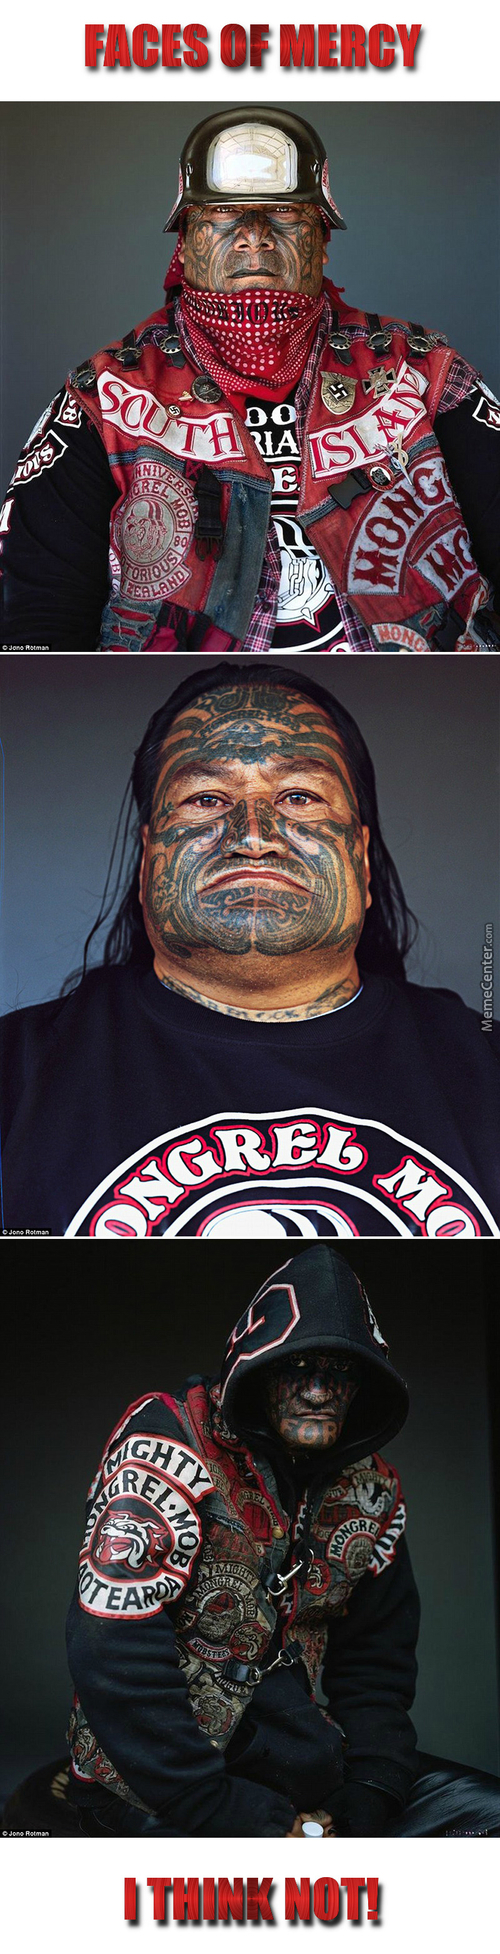 Members Of The Mighty Mongrel Mob, The Most Notorious Gang In New Zealand